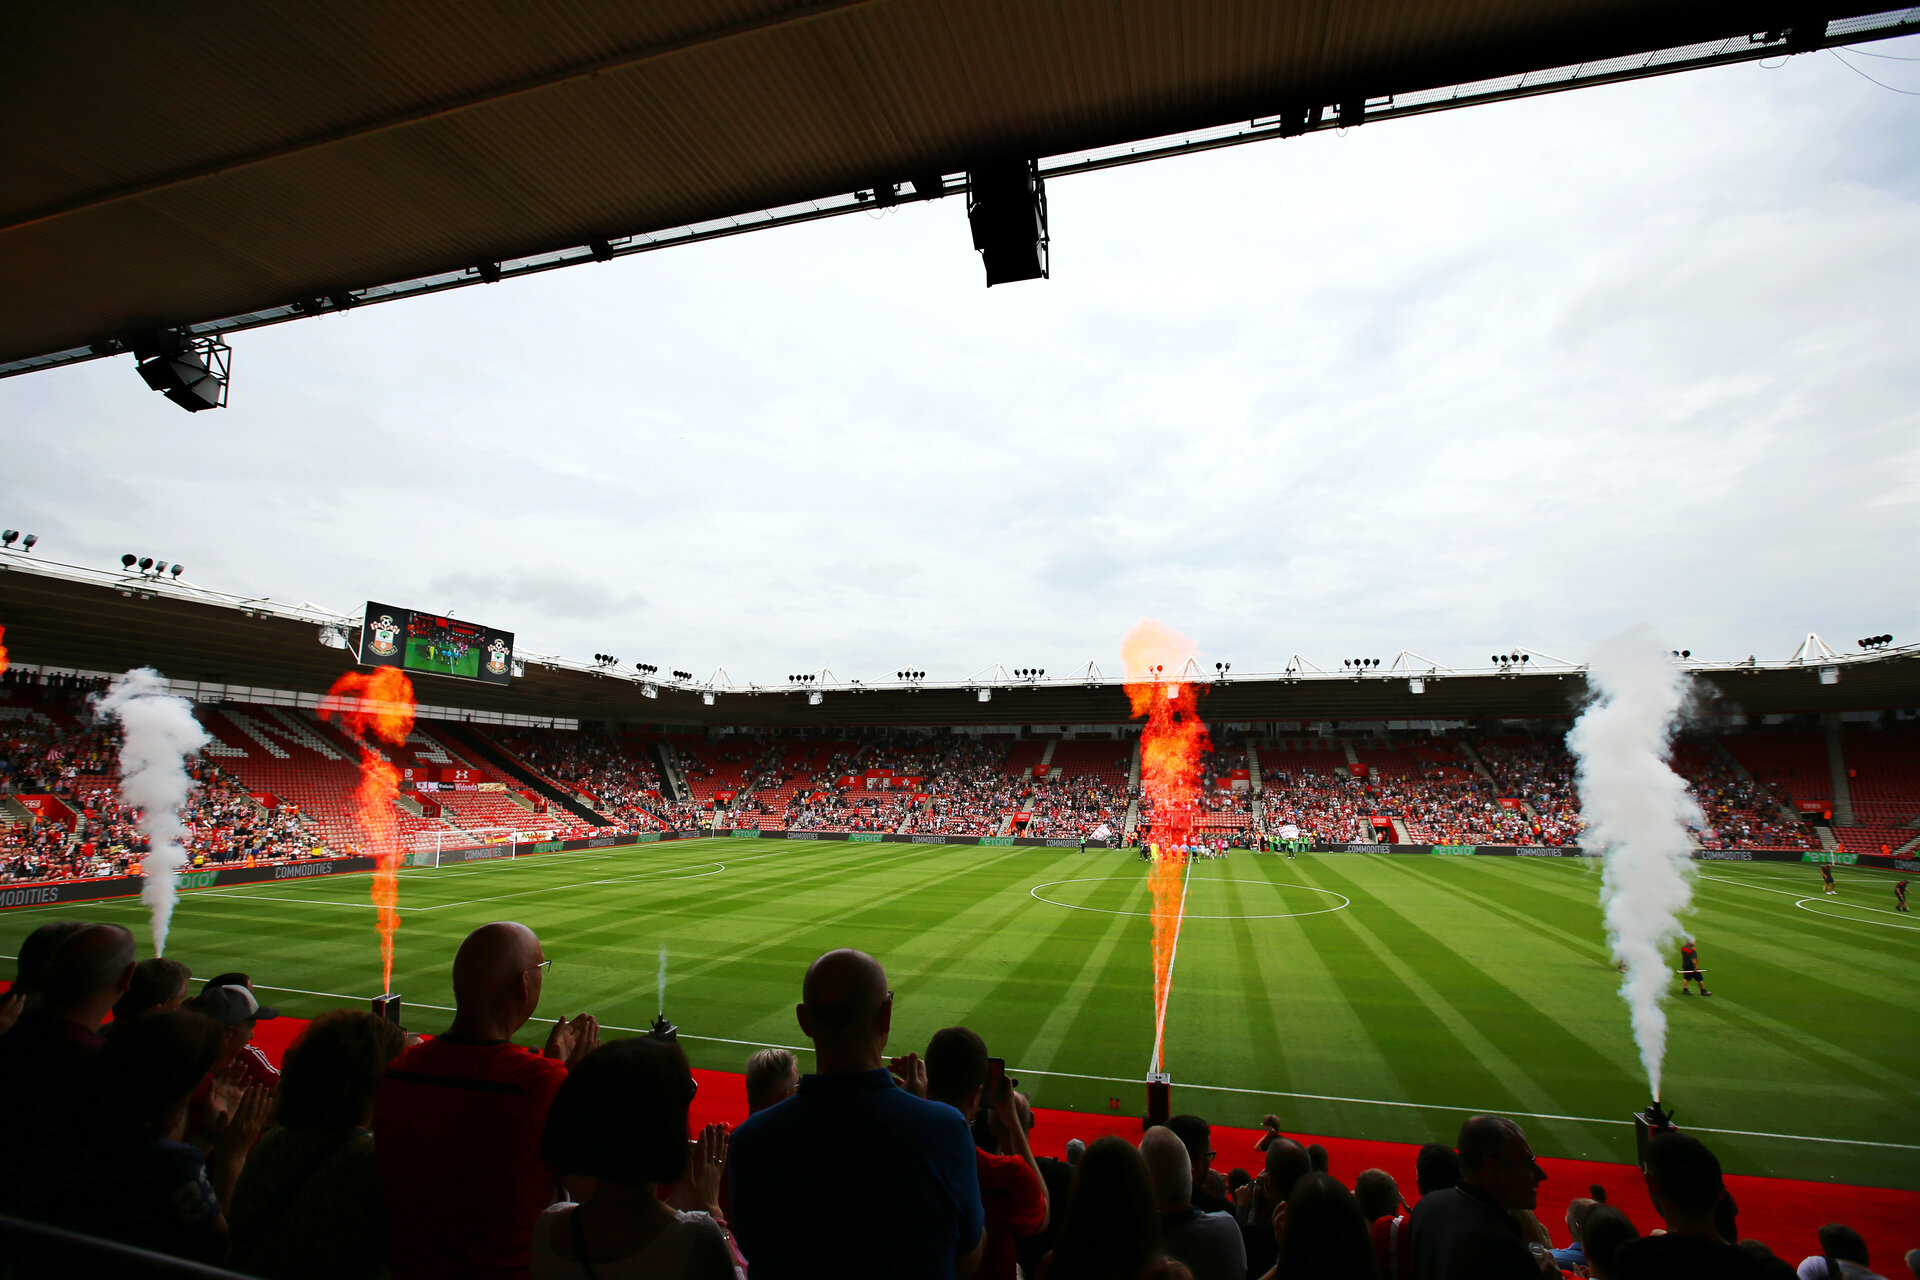 SOUTHAMPTON, ENGLAND - AUGUST 03: General view ahead of Kick off for the Pre-Season Friendly match between Southampton FC and FC Köln pictured at St. Mary's Stadium on August 03, 2019 in Southampton, England. (Photo by James Bridle - Southampton FC/Southampton FC via Getty Images)